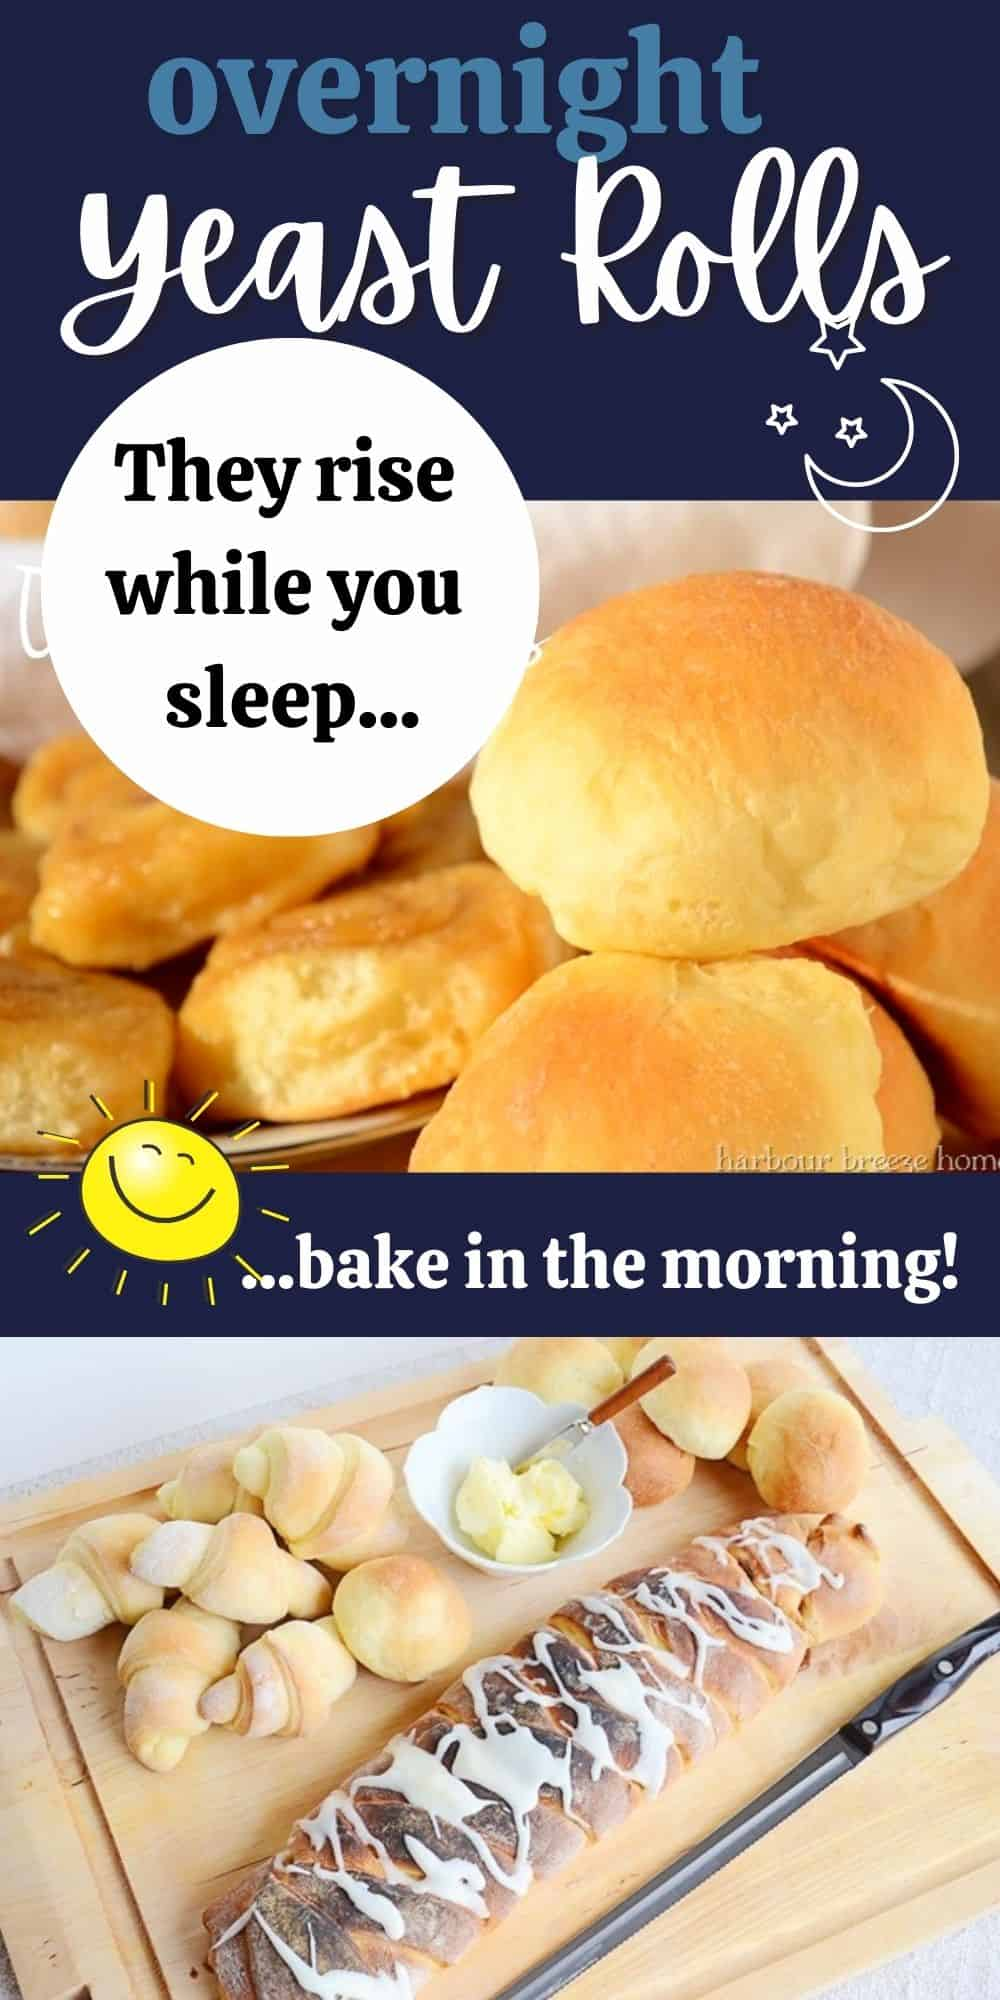 Overnight yeast rolls you can bake fresh in the morning.